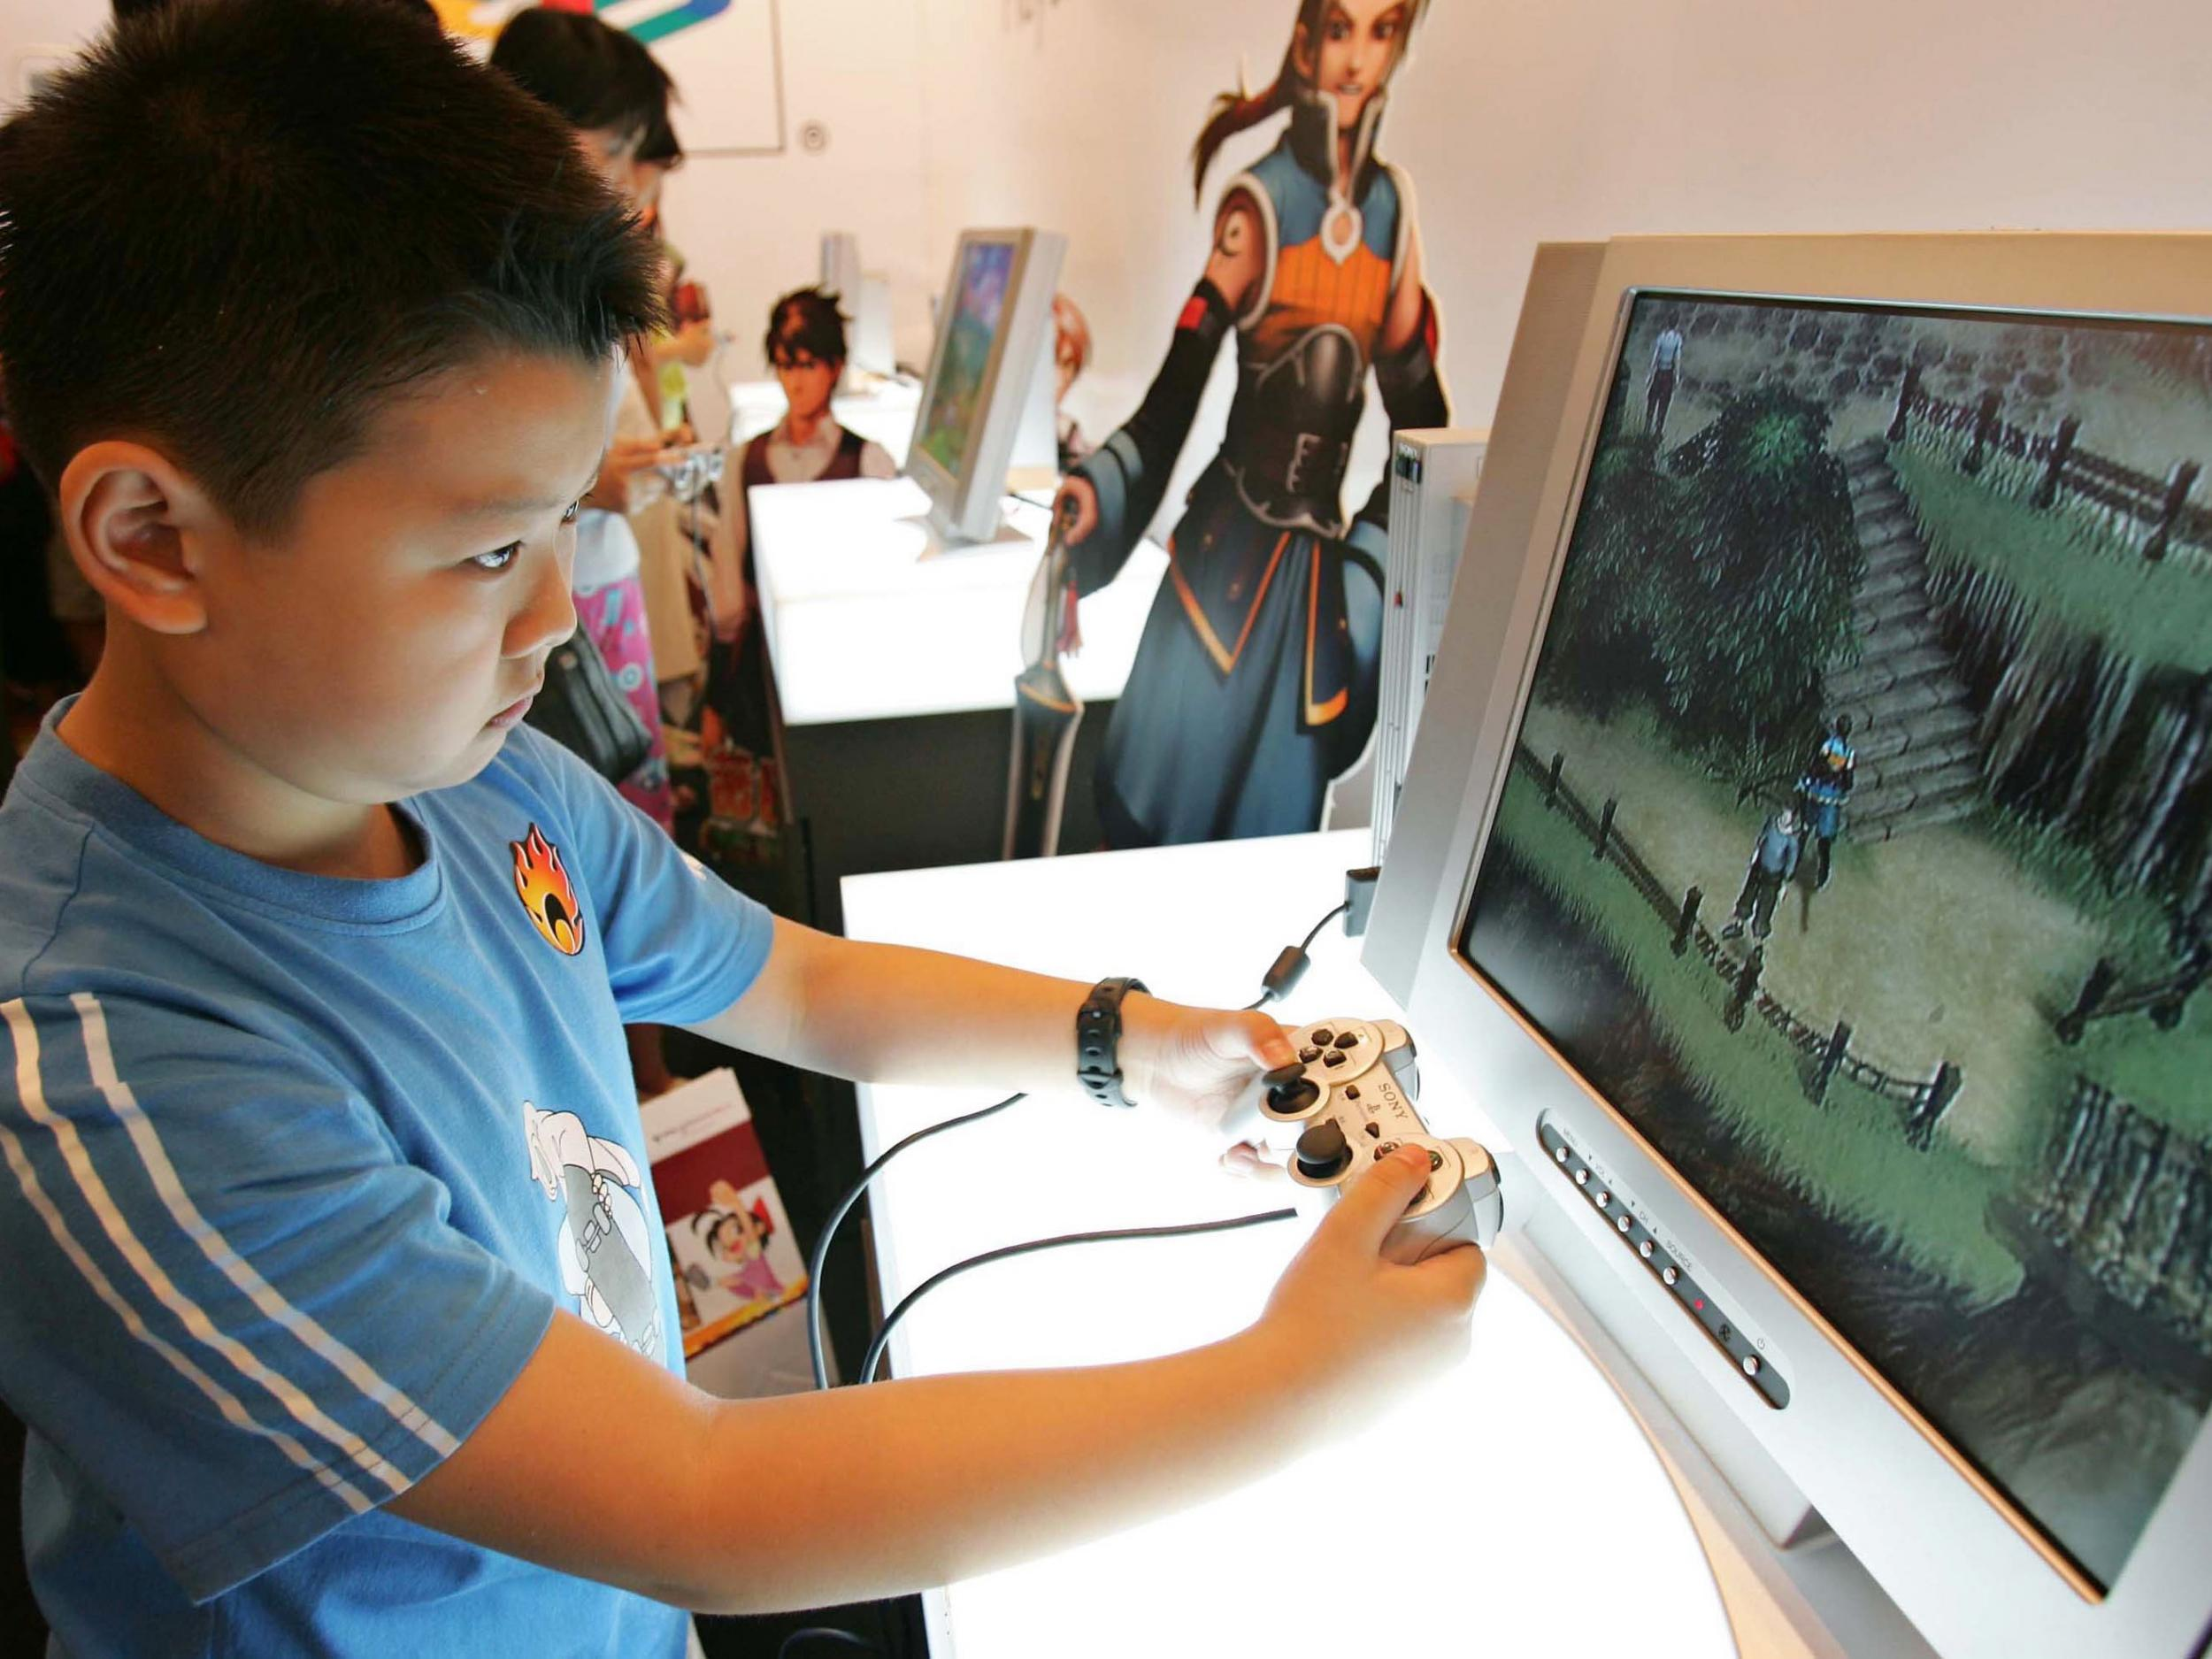 China just banned kids from playing video games for more than 90 minutes a day or at night